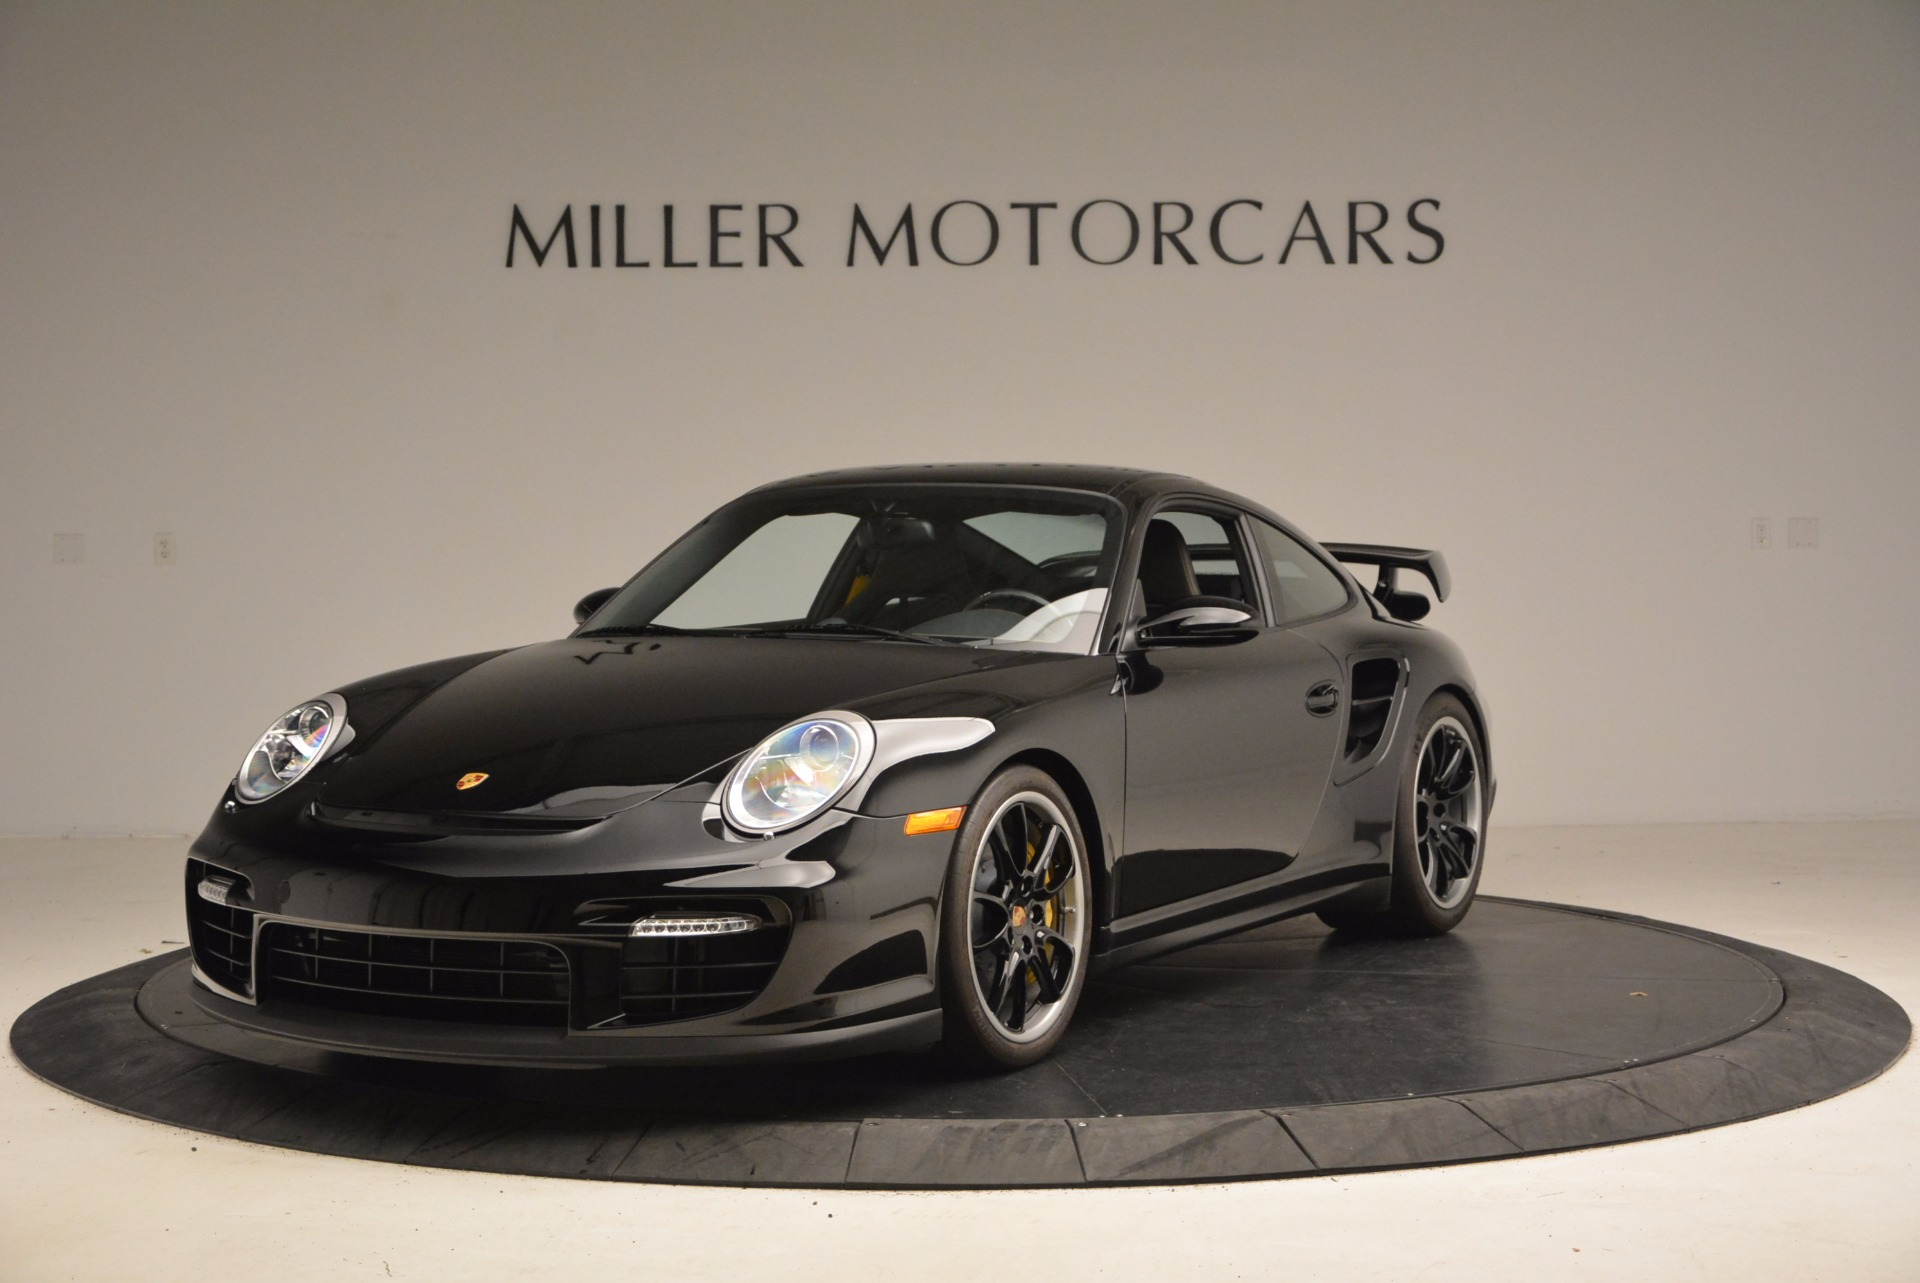 Used 2008 Porsche 911 GT2 for sale Sold at Bentley Greenwich in Greenwich CT 06830 1